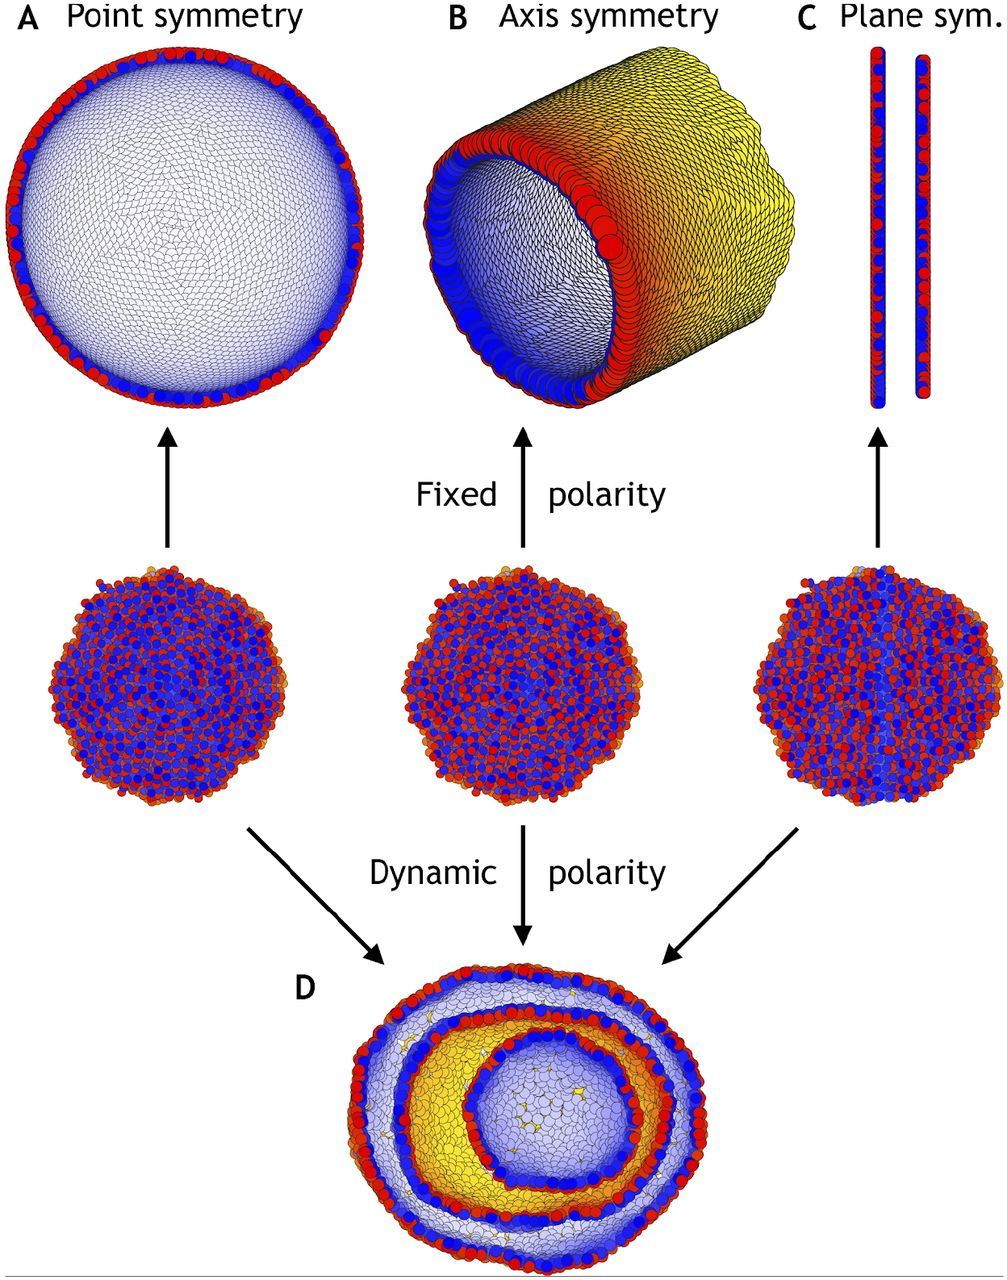 Theory bridging cell polarities with development of robust